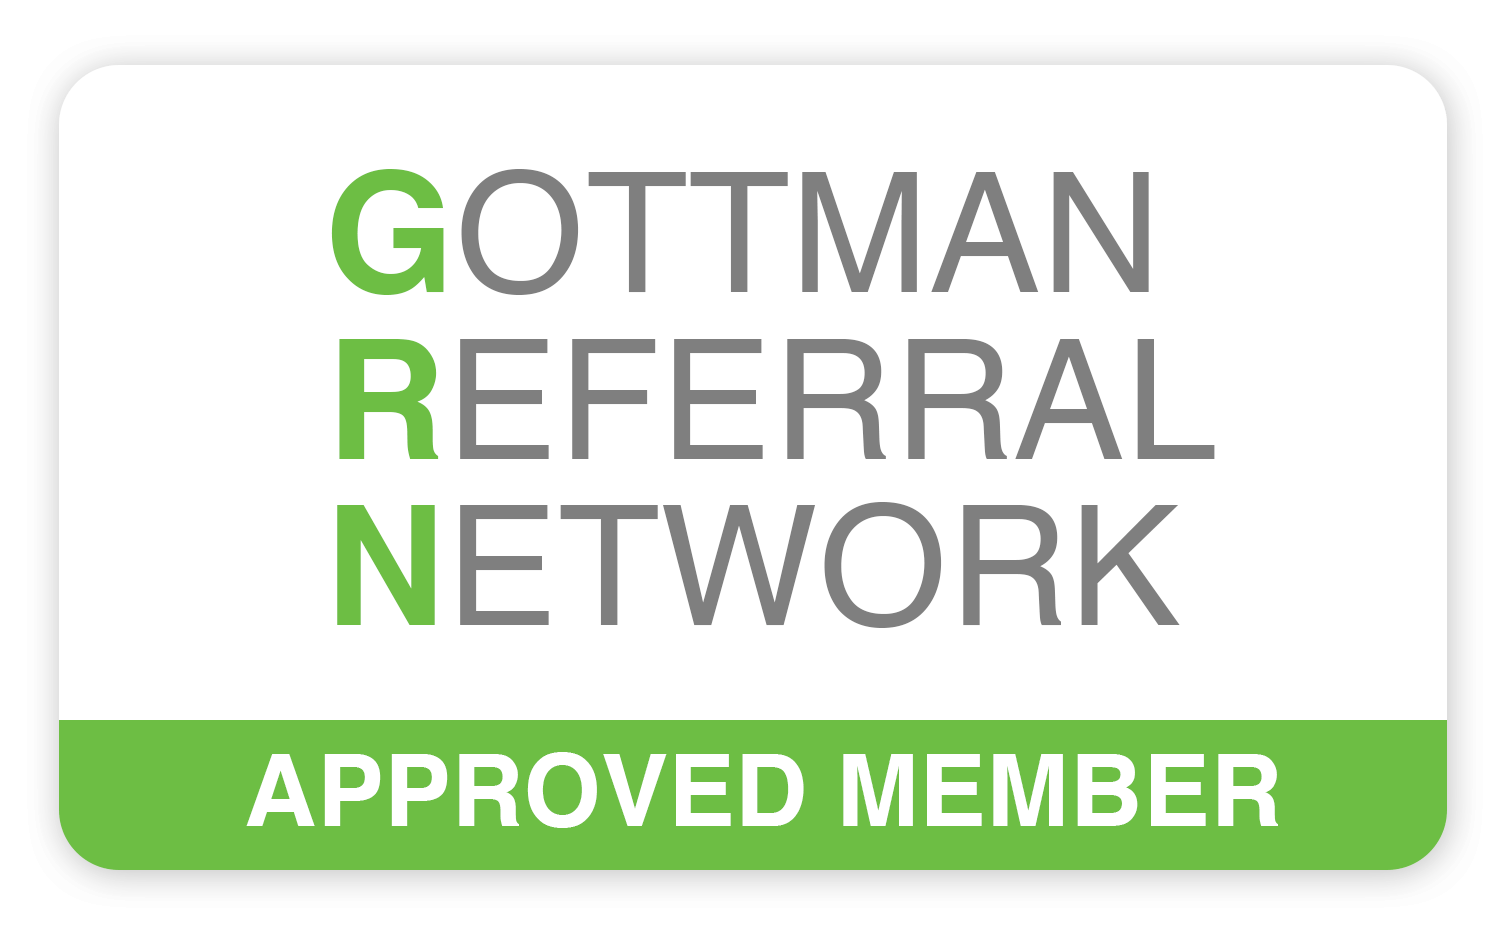 Khara Fuentes's profile on the Gottman Referral Network